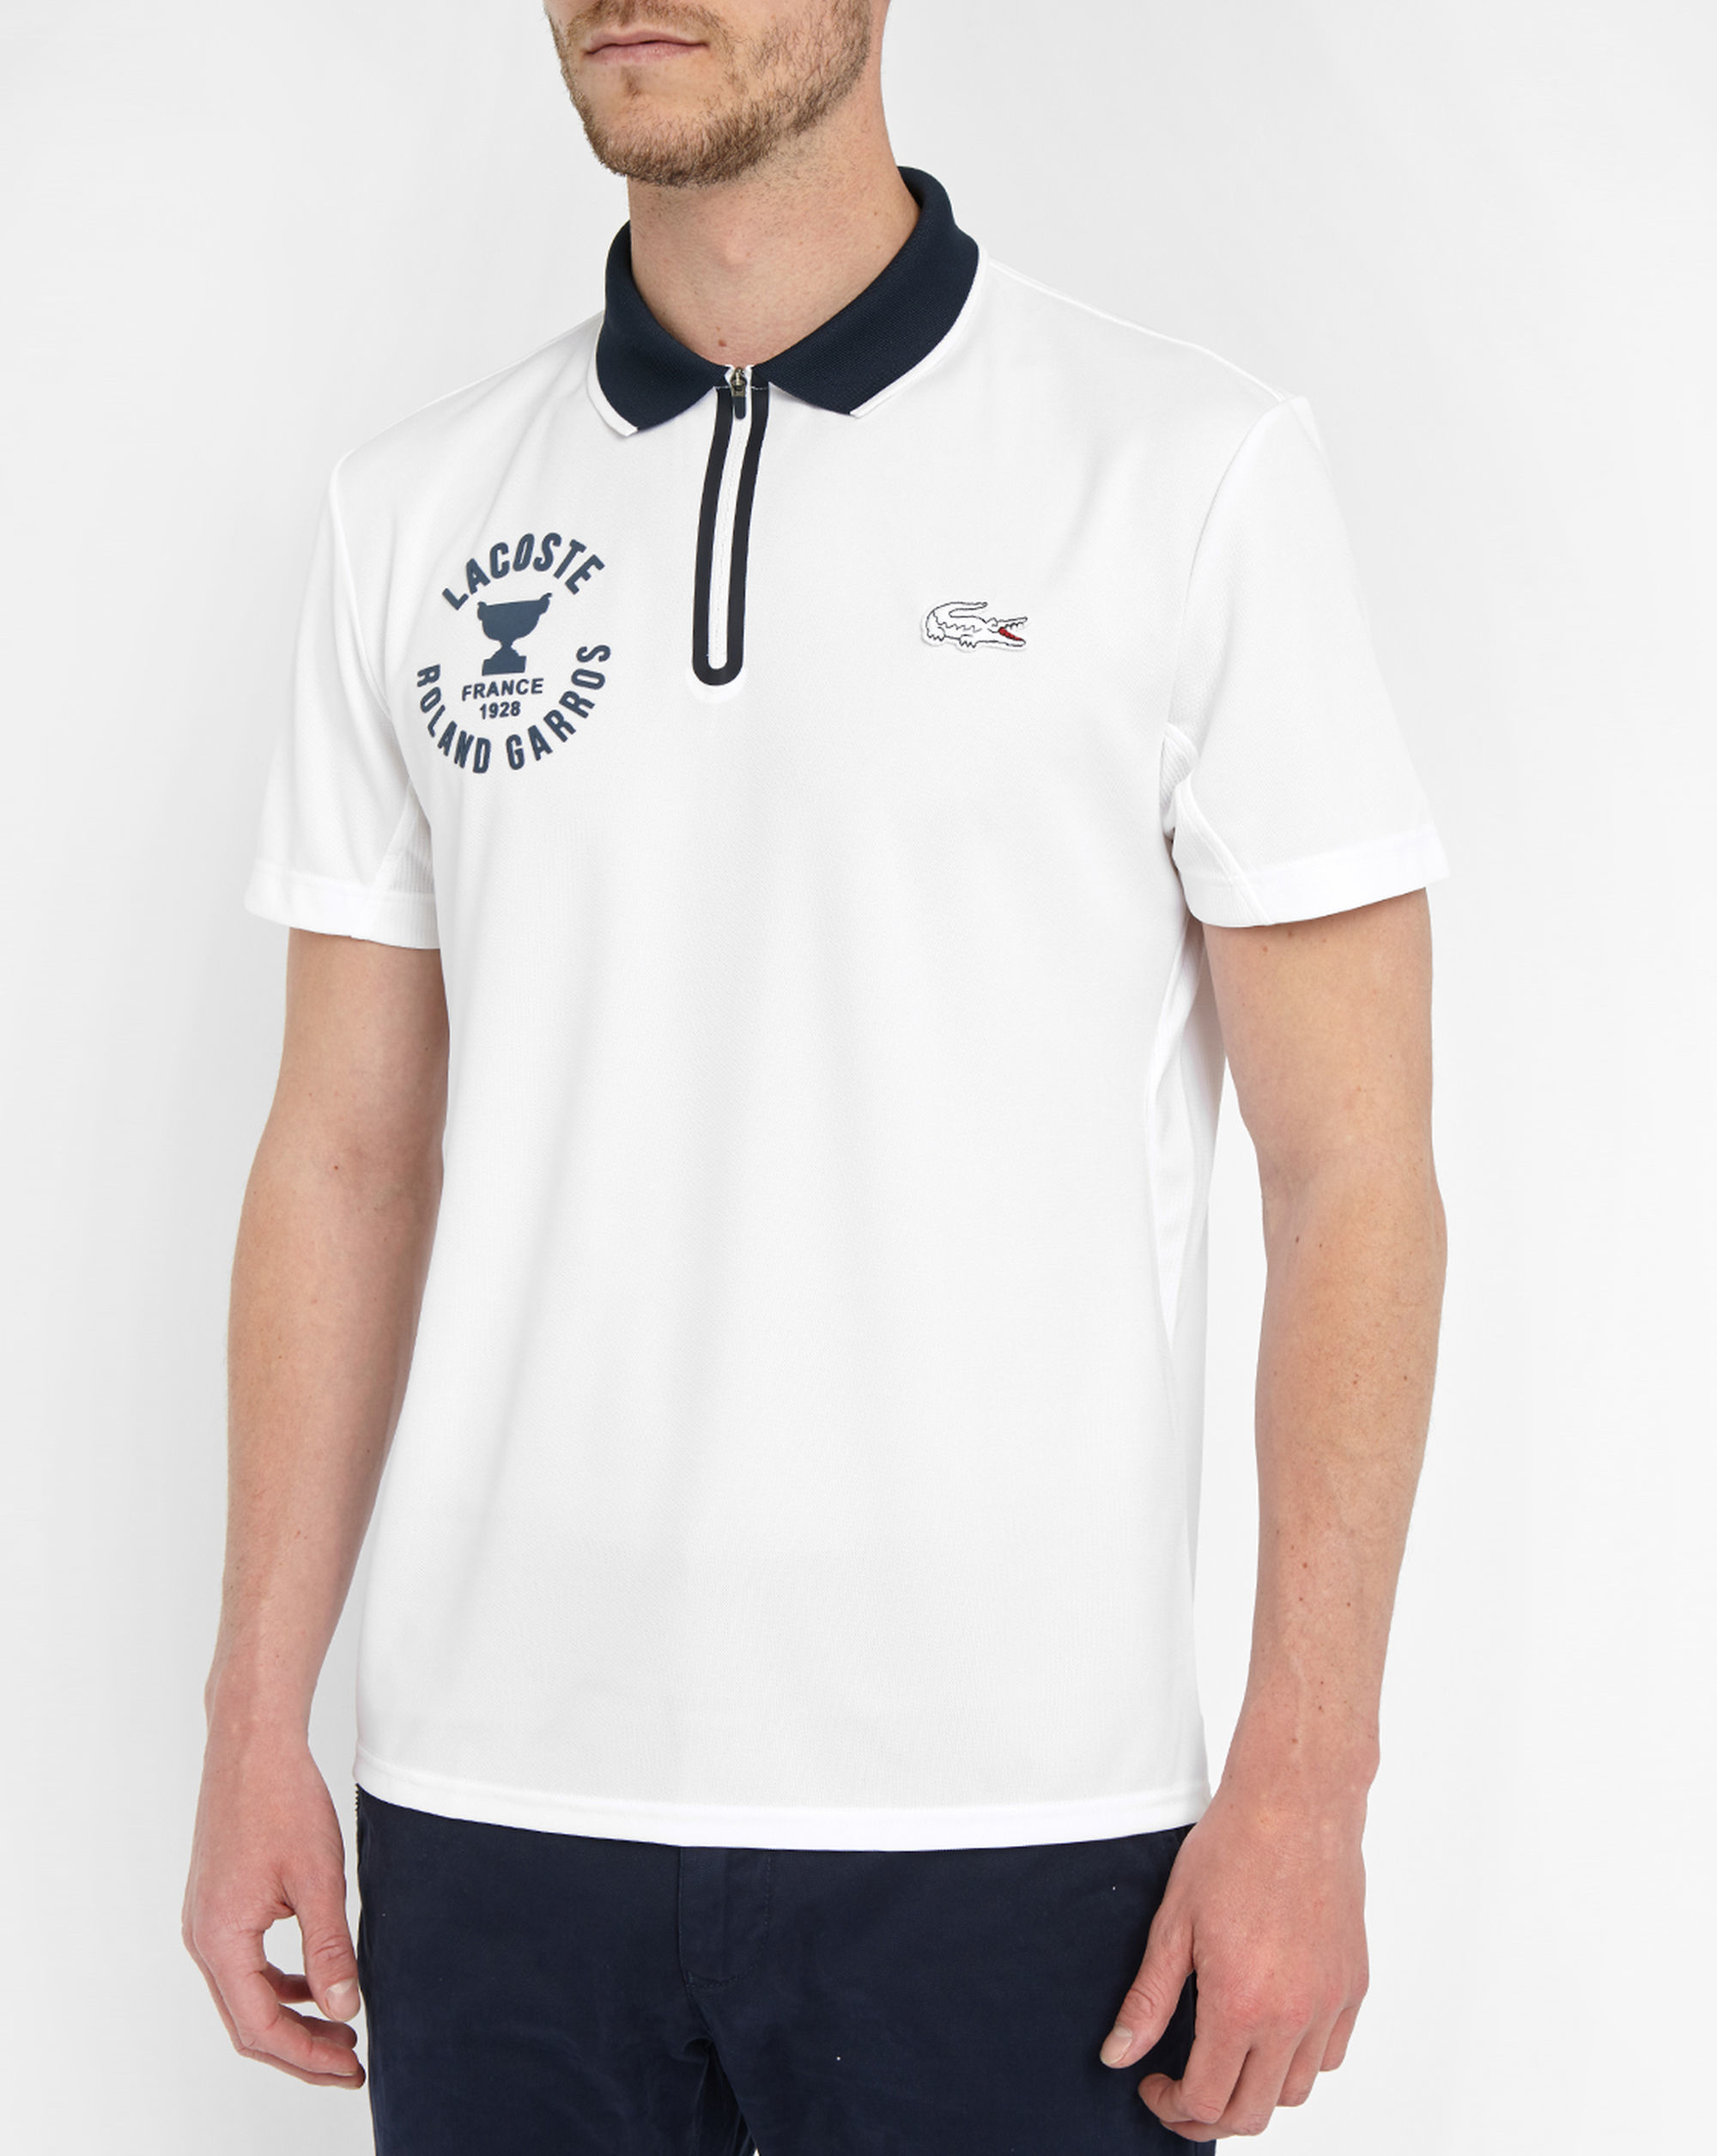 lacoste white short sleeve polo shirt with navy collar and. Black Bedroom Furniture Sets. Home Design Ideas